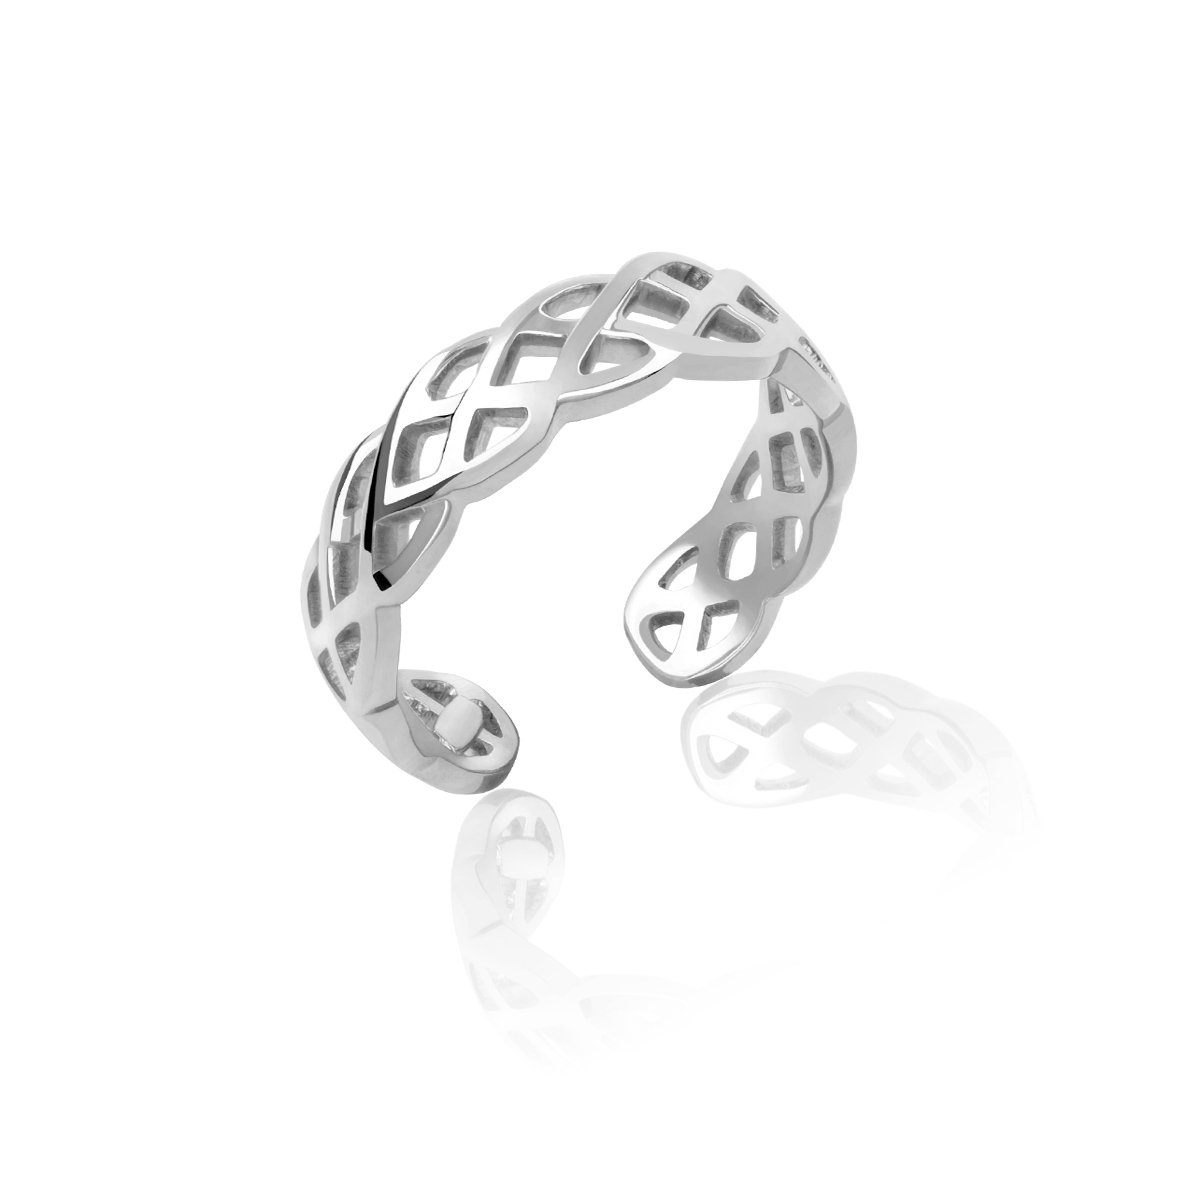 Honolulu Jewelry Company Sterling Silver Braided Weave Toe Ring